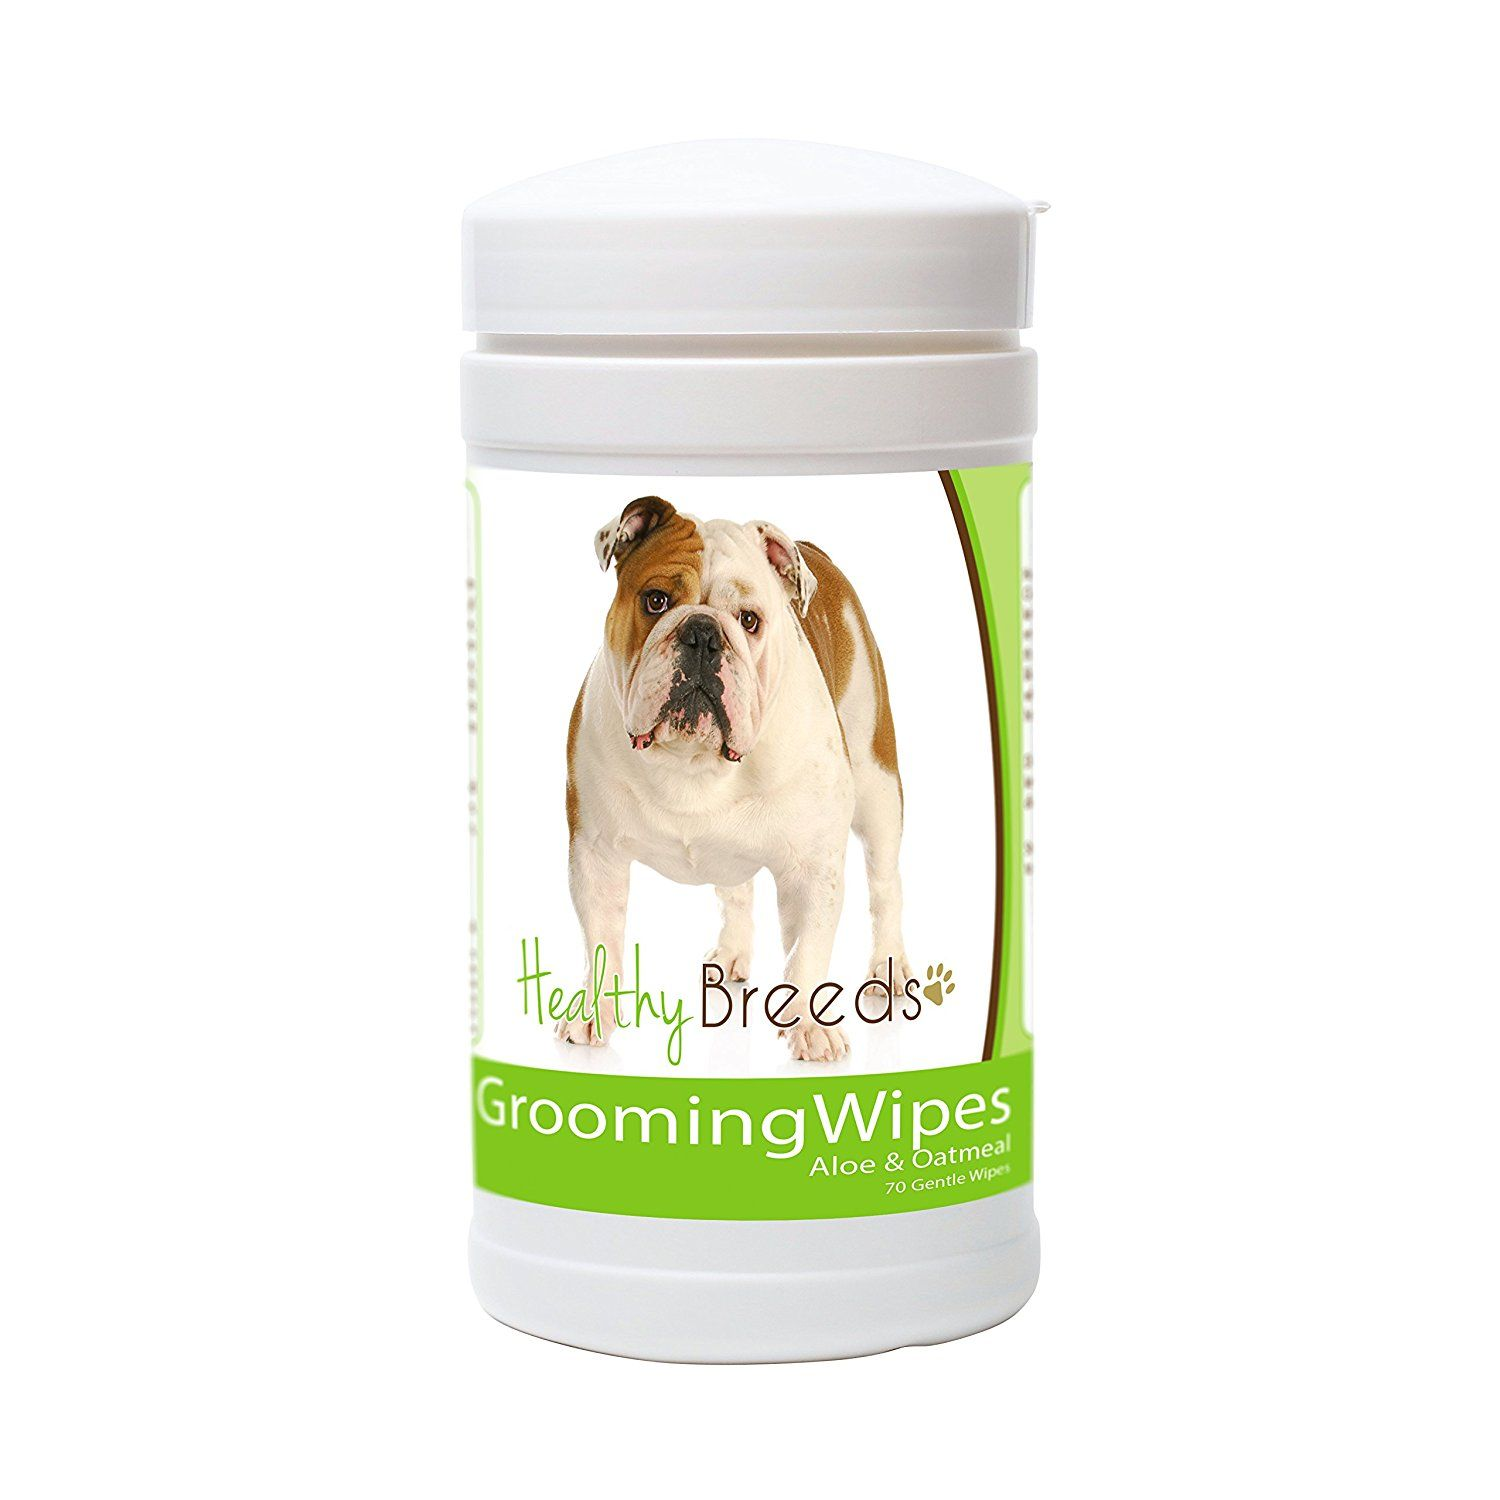 Healthy breeds dog grooming wipes over 80 breeds with